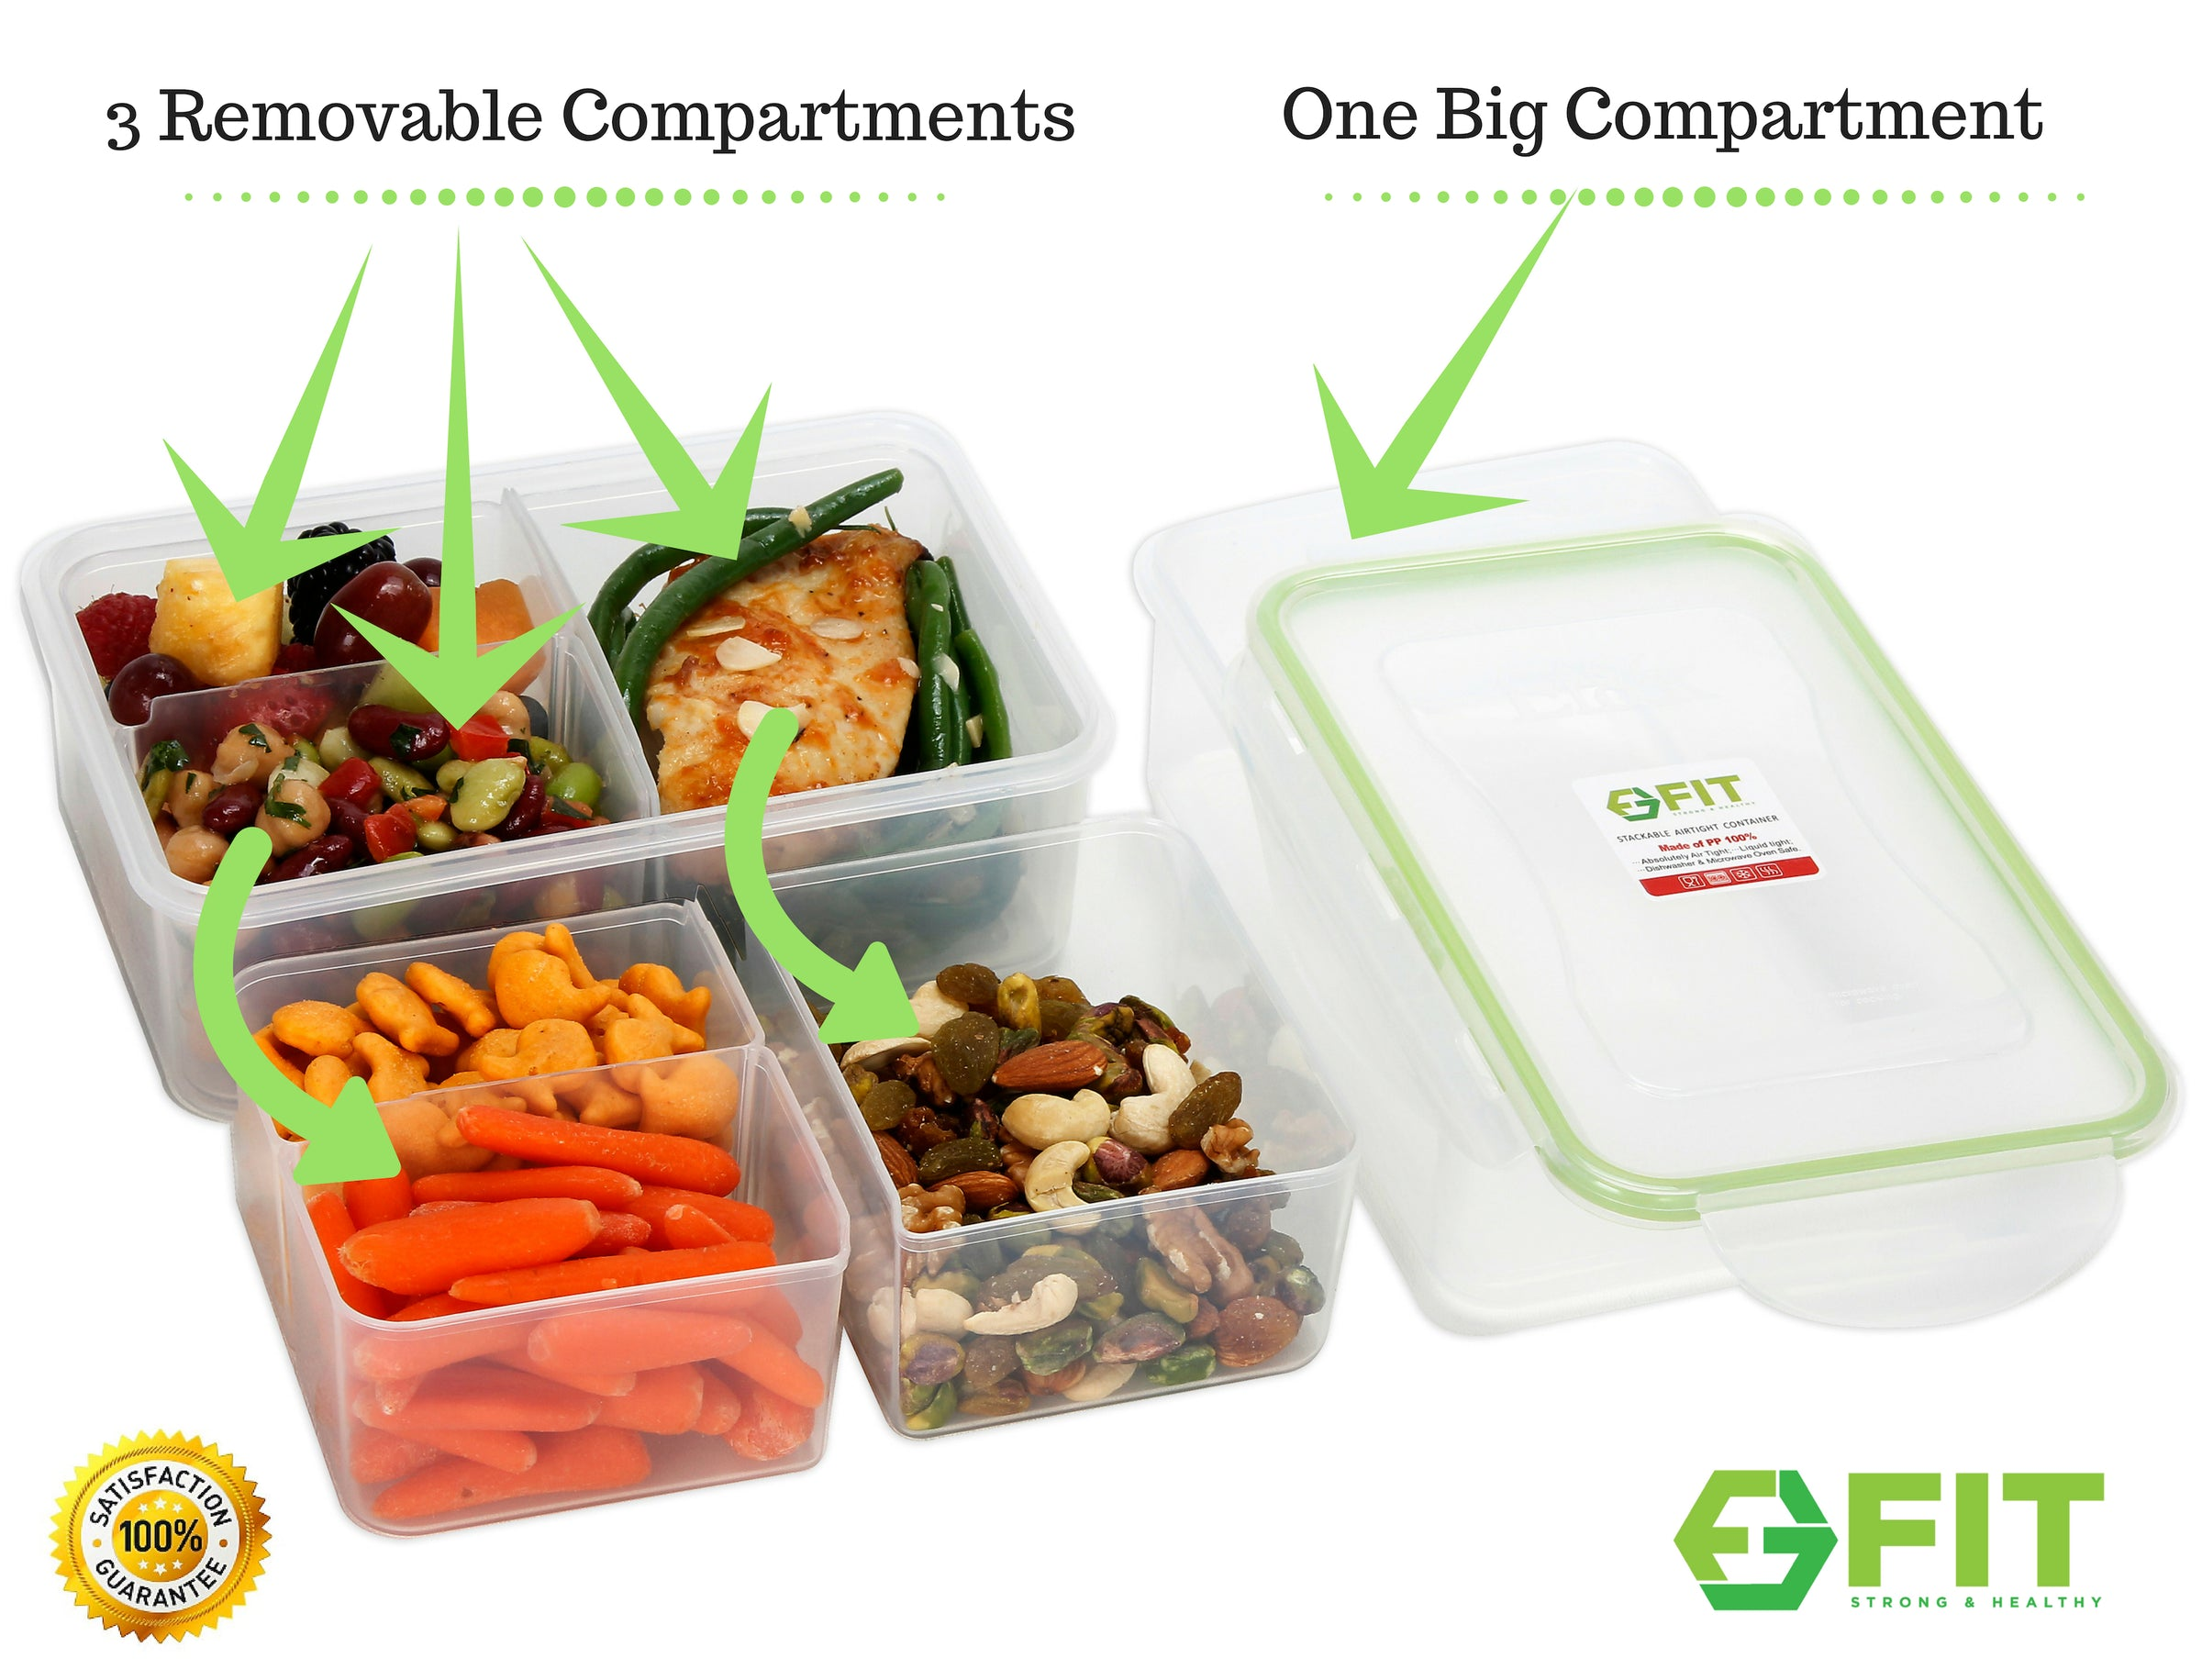 Bento Lunch Box Meal Prep Containers 3 Pack 39 Oz 3 Removable Compartments Bento Boxes For Adults Kids Lunchbox Fit Strong Healthy